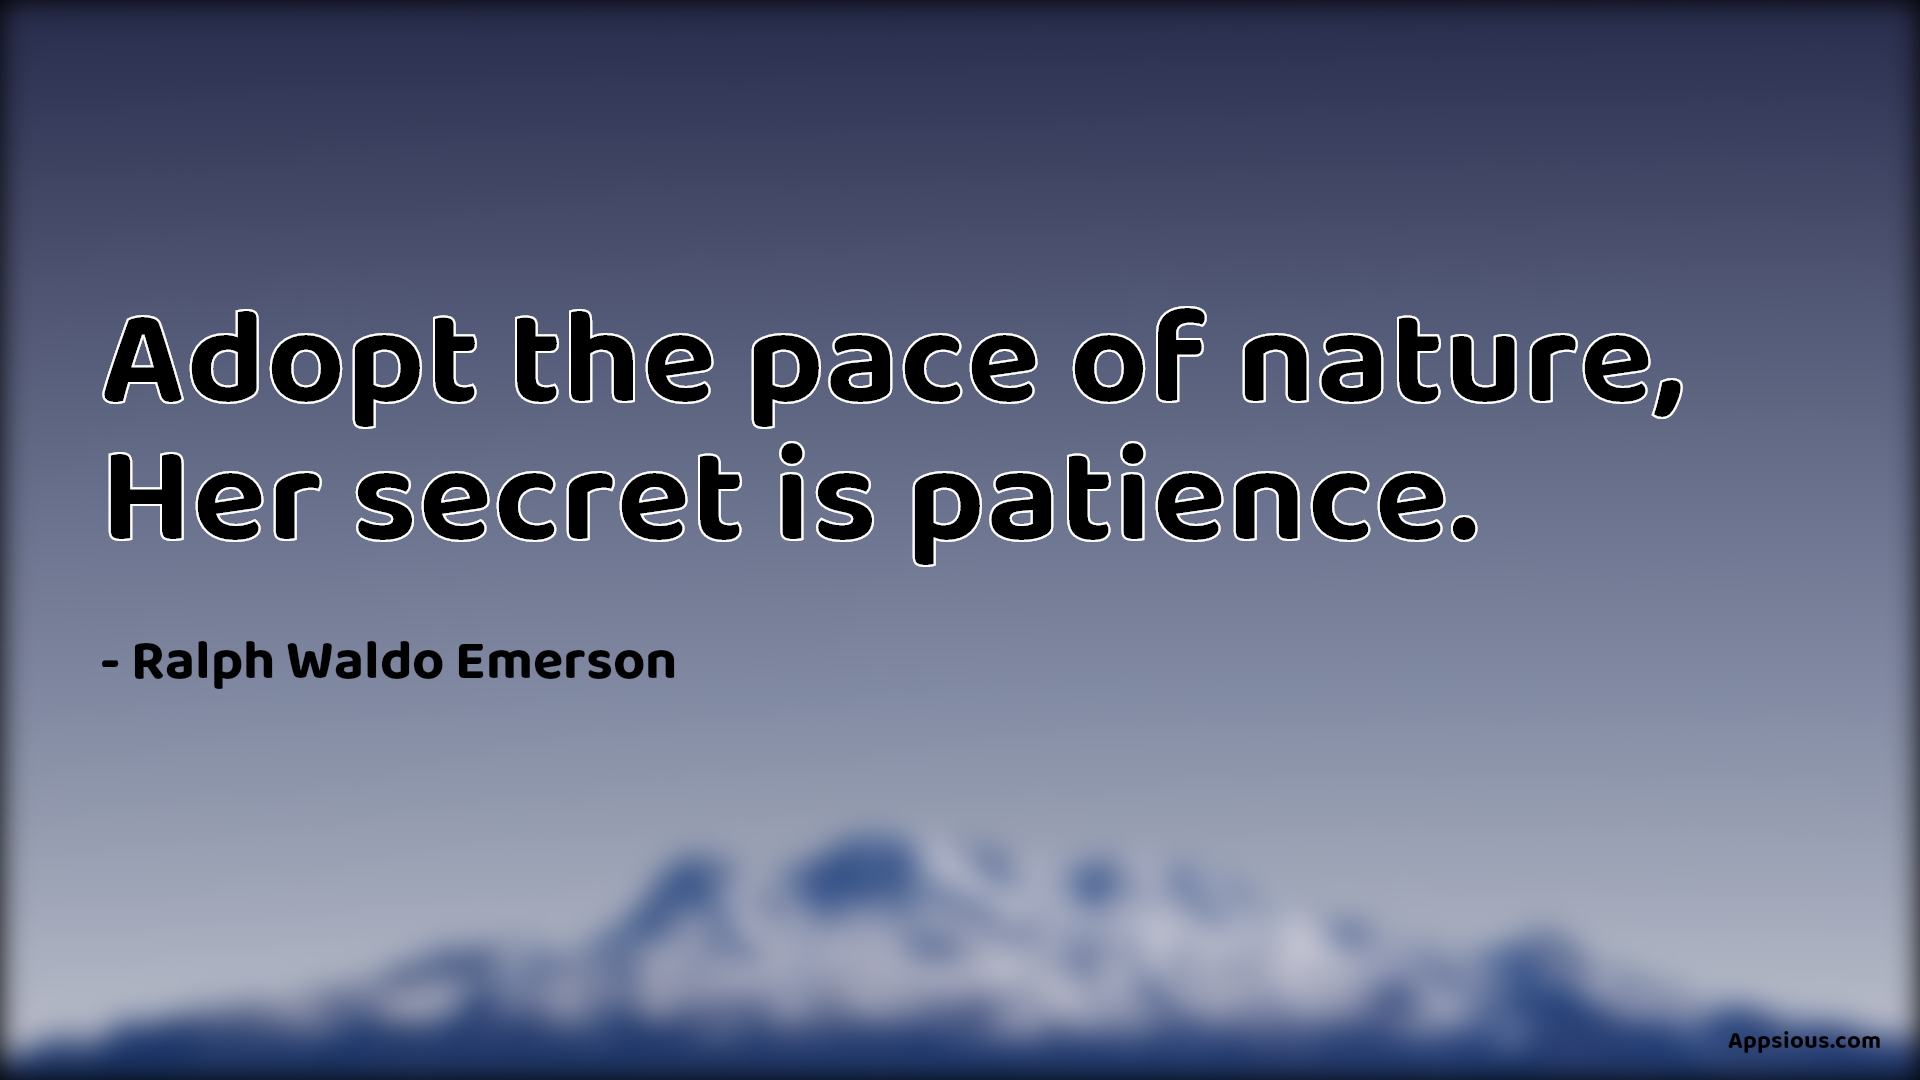 Adopt the pace of nature, Her secret is patience.